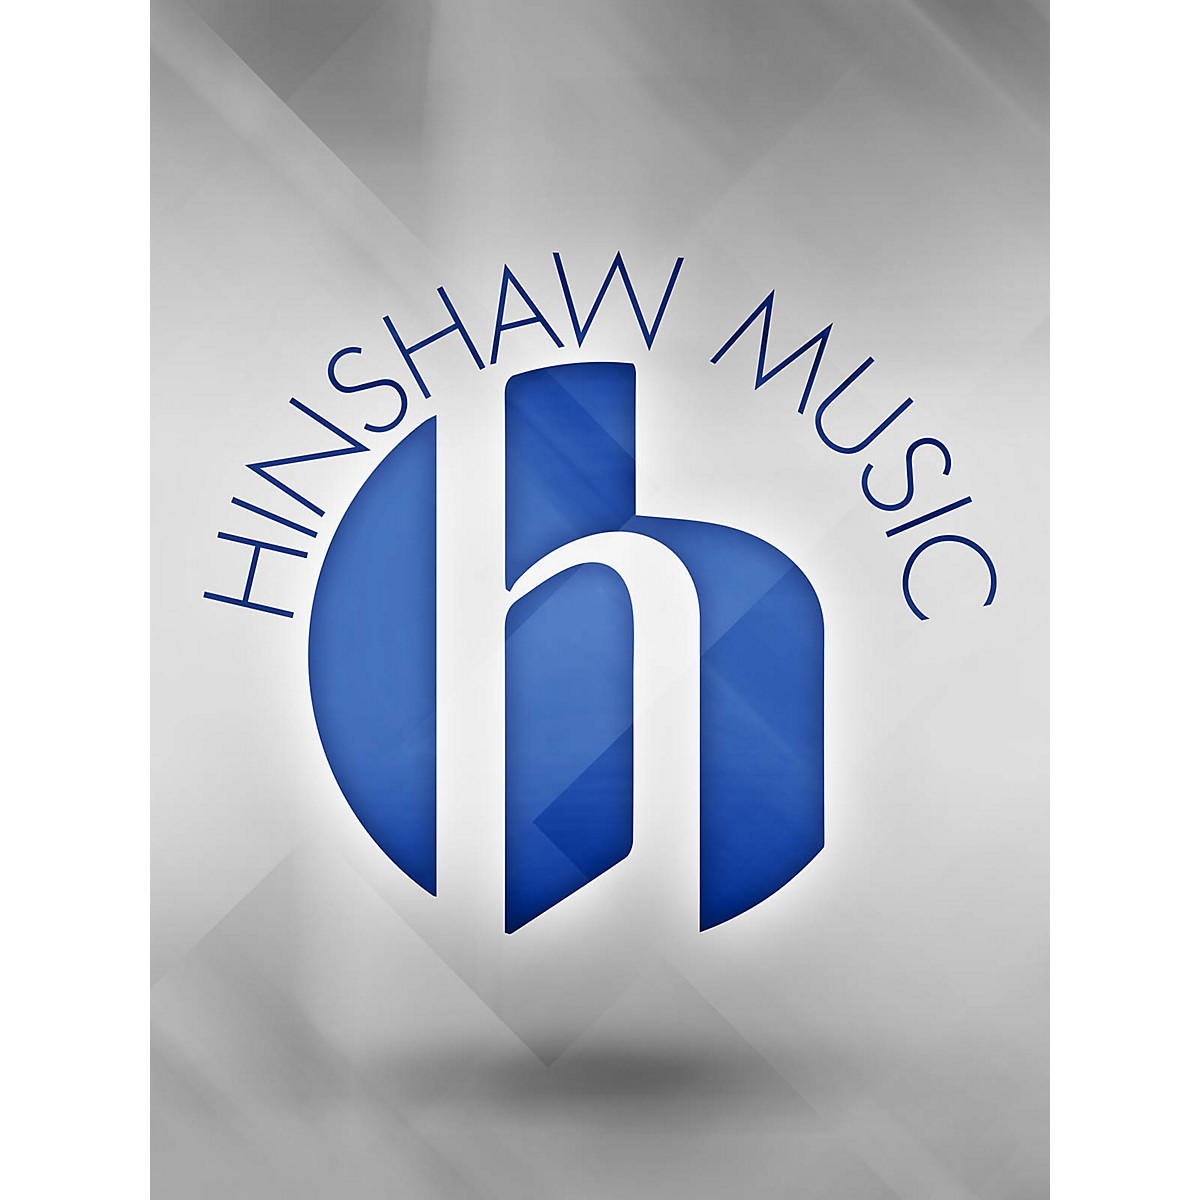 Hinshaw Music The Song Within SATB Divisi Composed by Frank Ticheli